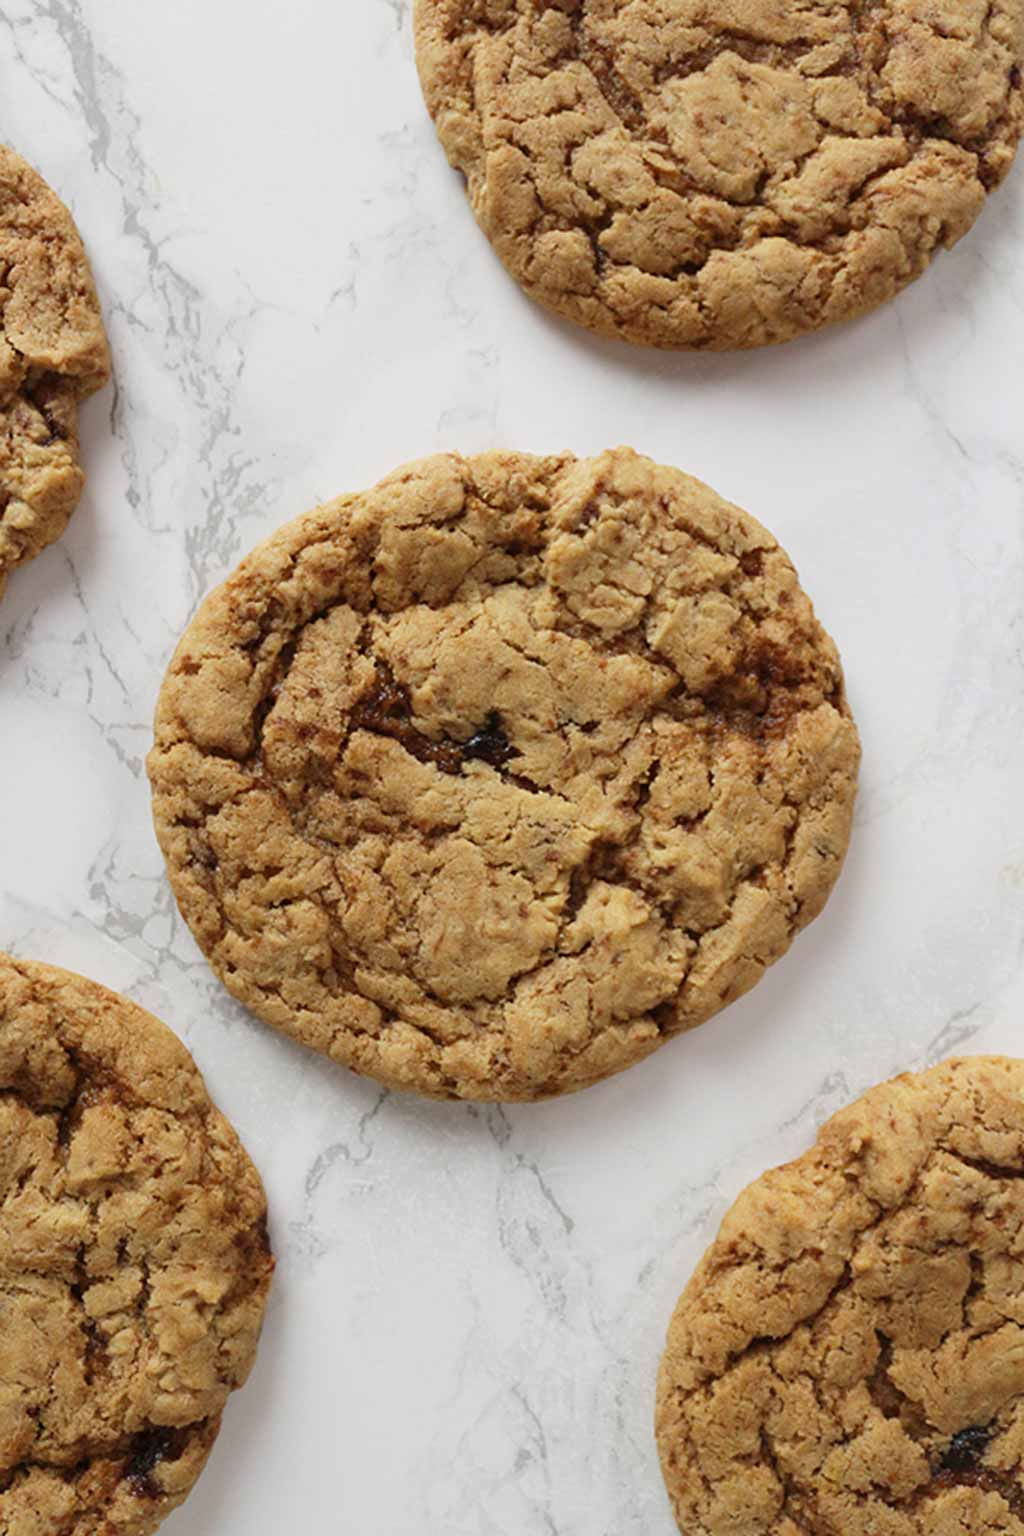 ginger Cookies Laying Flat On A White Background